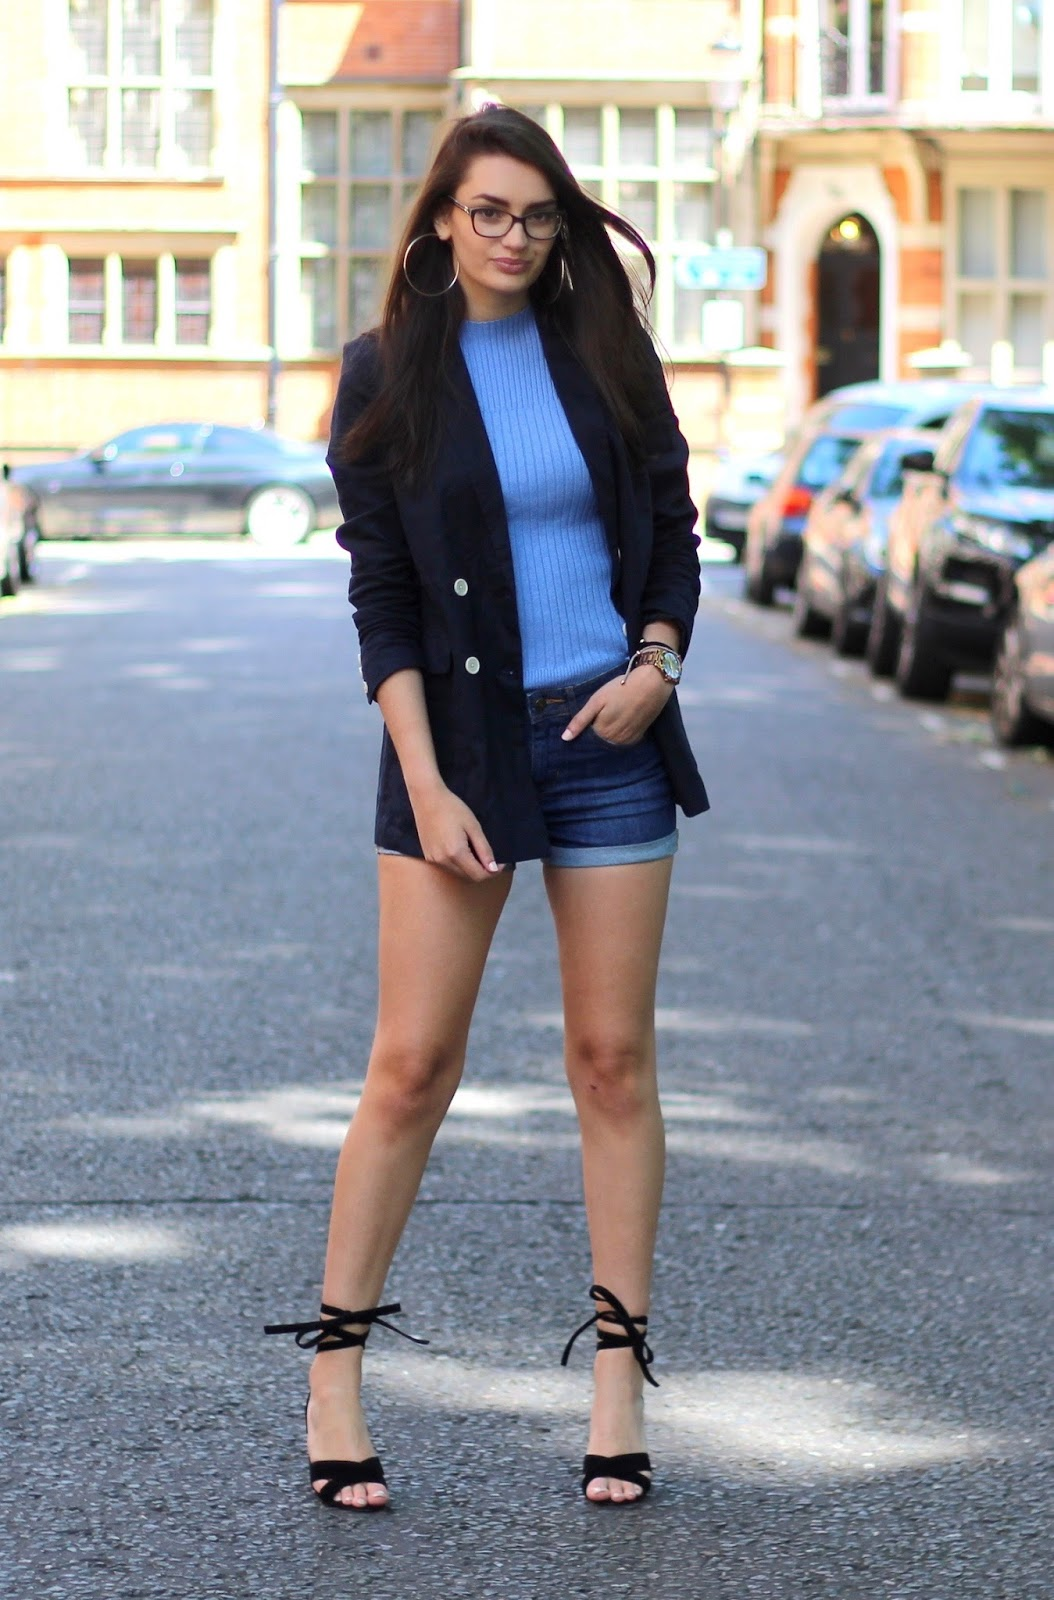 london fashion blogger summer style